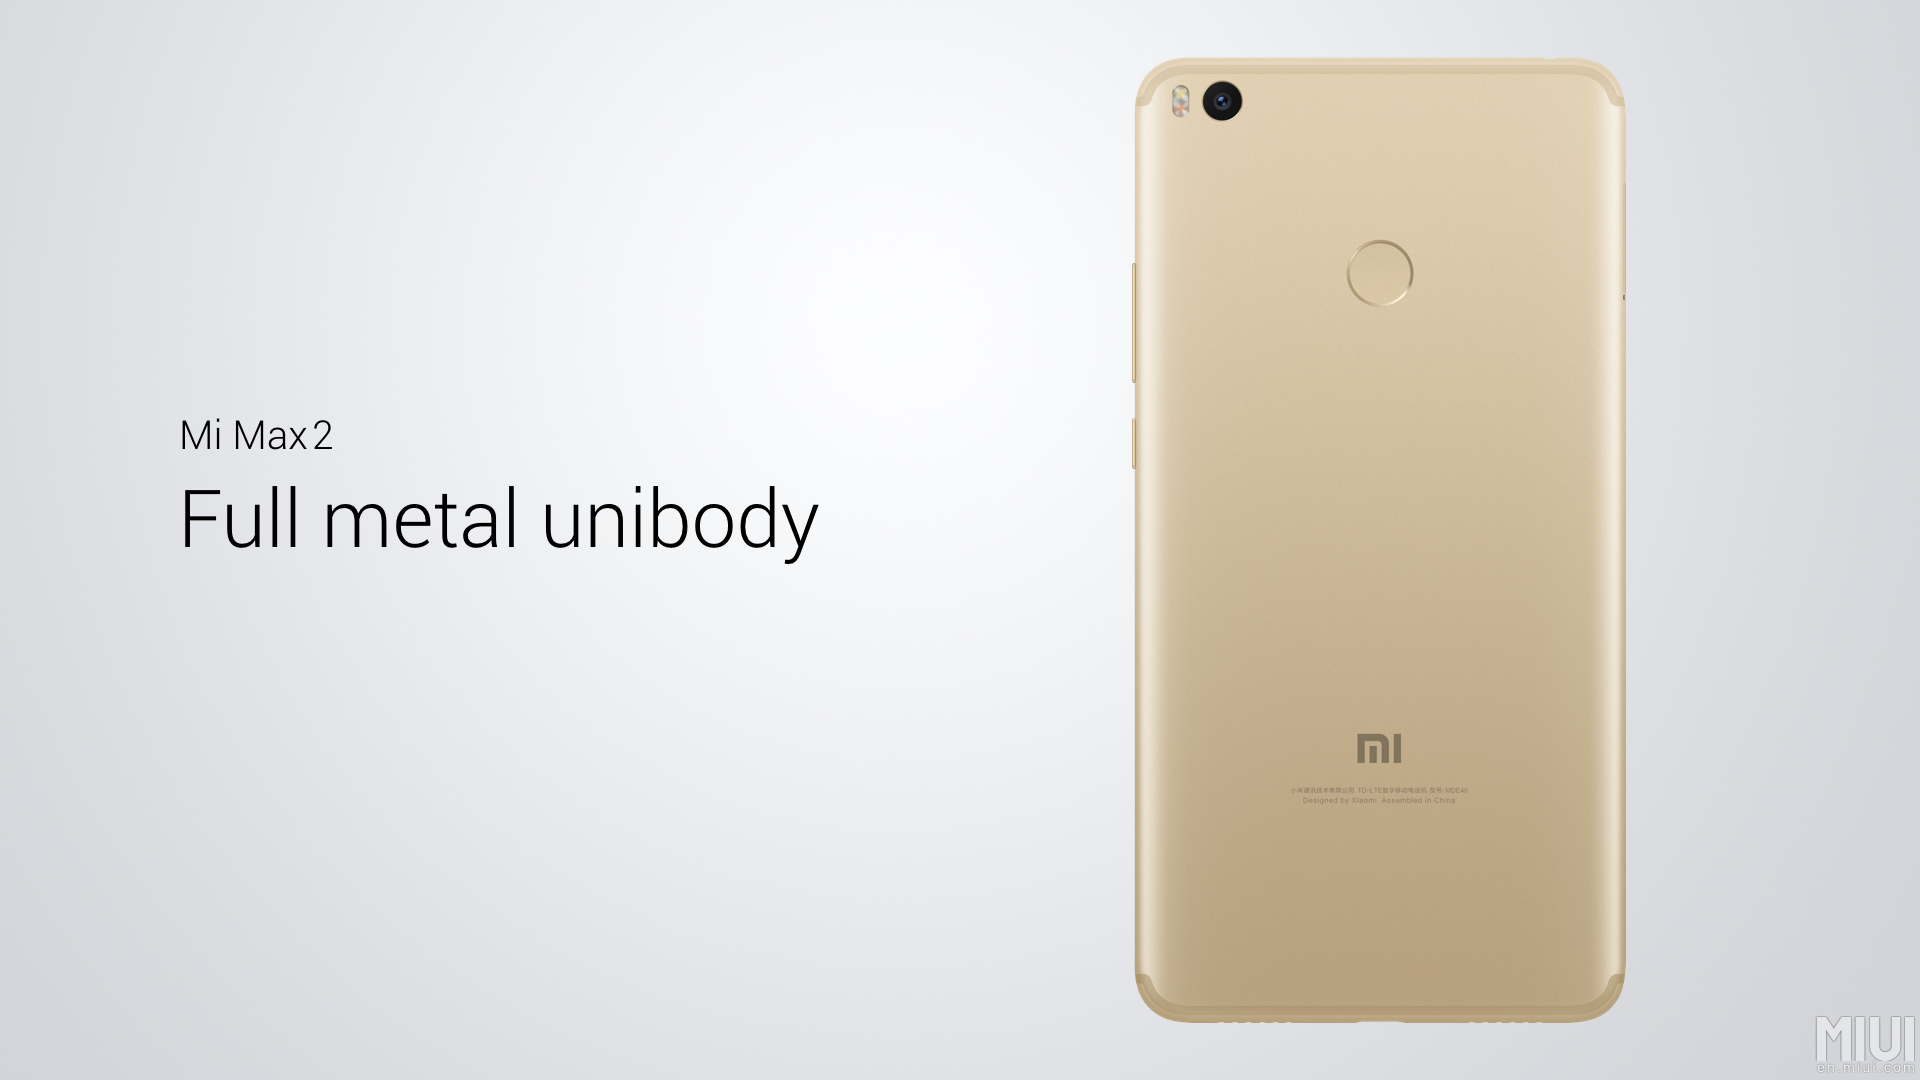 xiaomi mi max 2 mid ranger with a full metal body and huge 5 300 mah battery